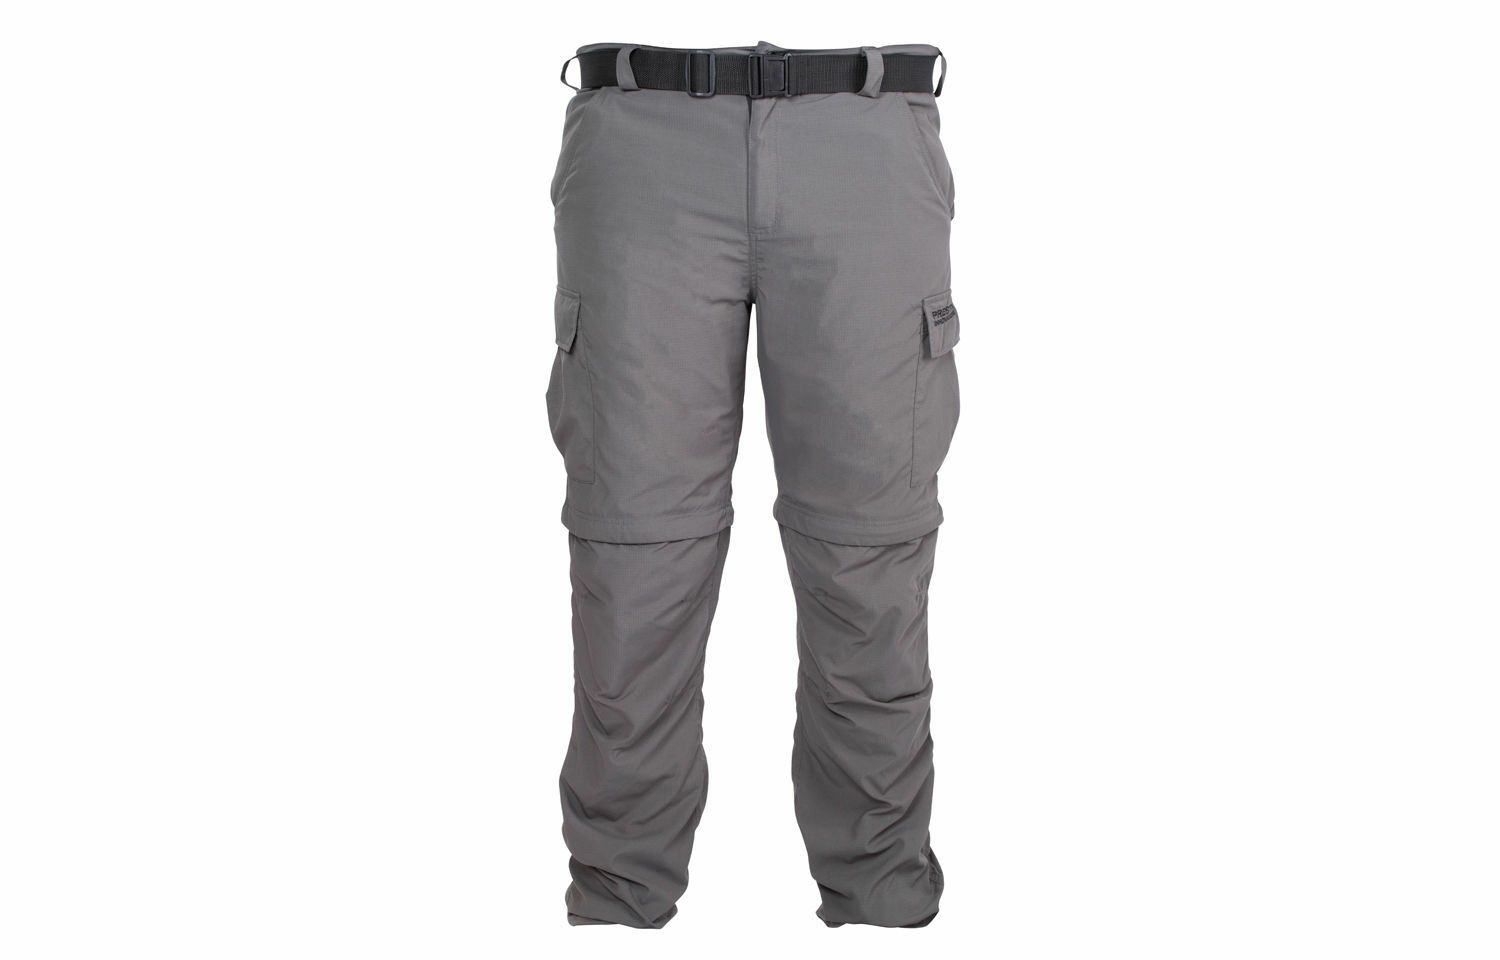 Preston Innovations Zip Off Cargo  Pants - sz xxl  with cheap price to get top brand